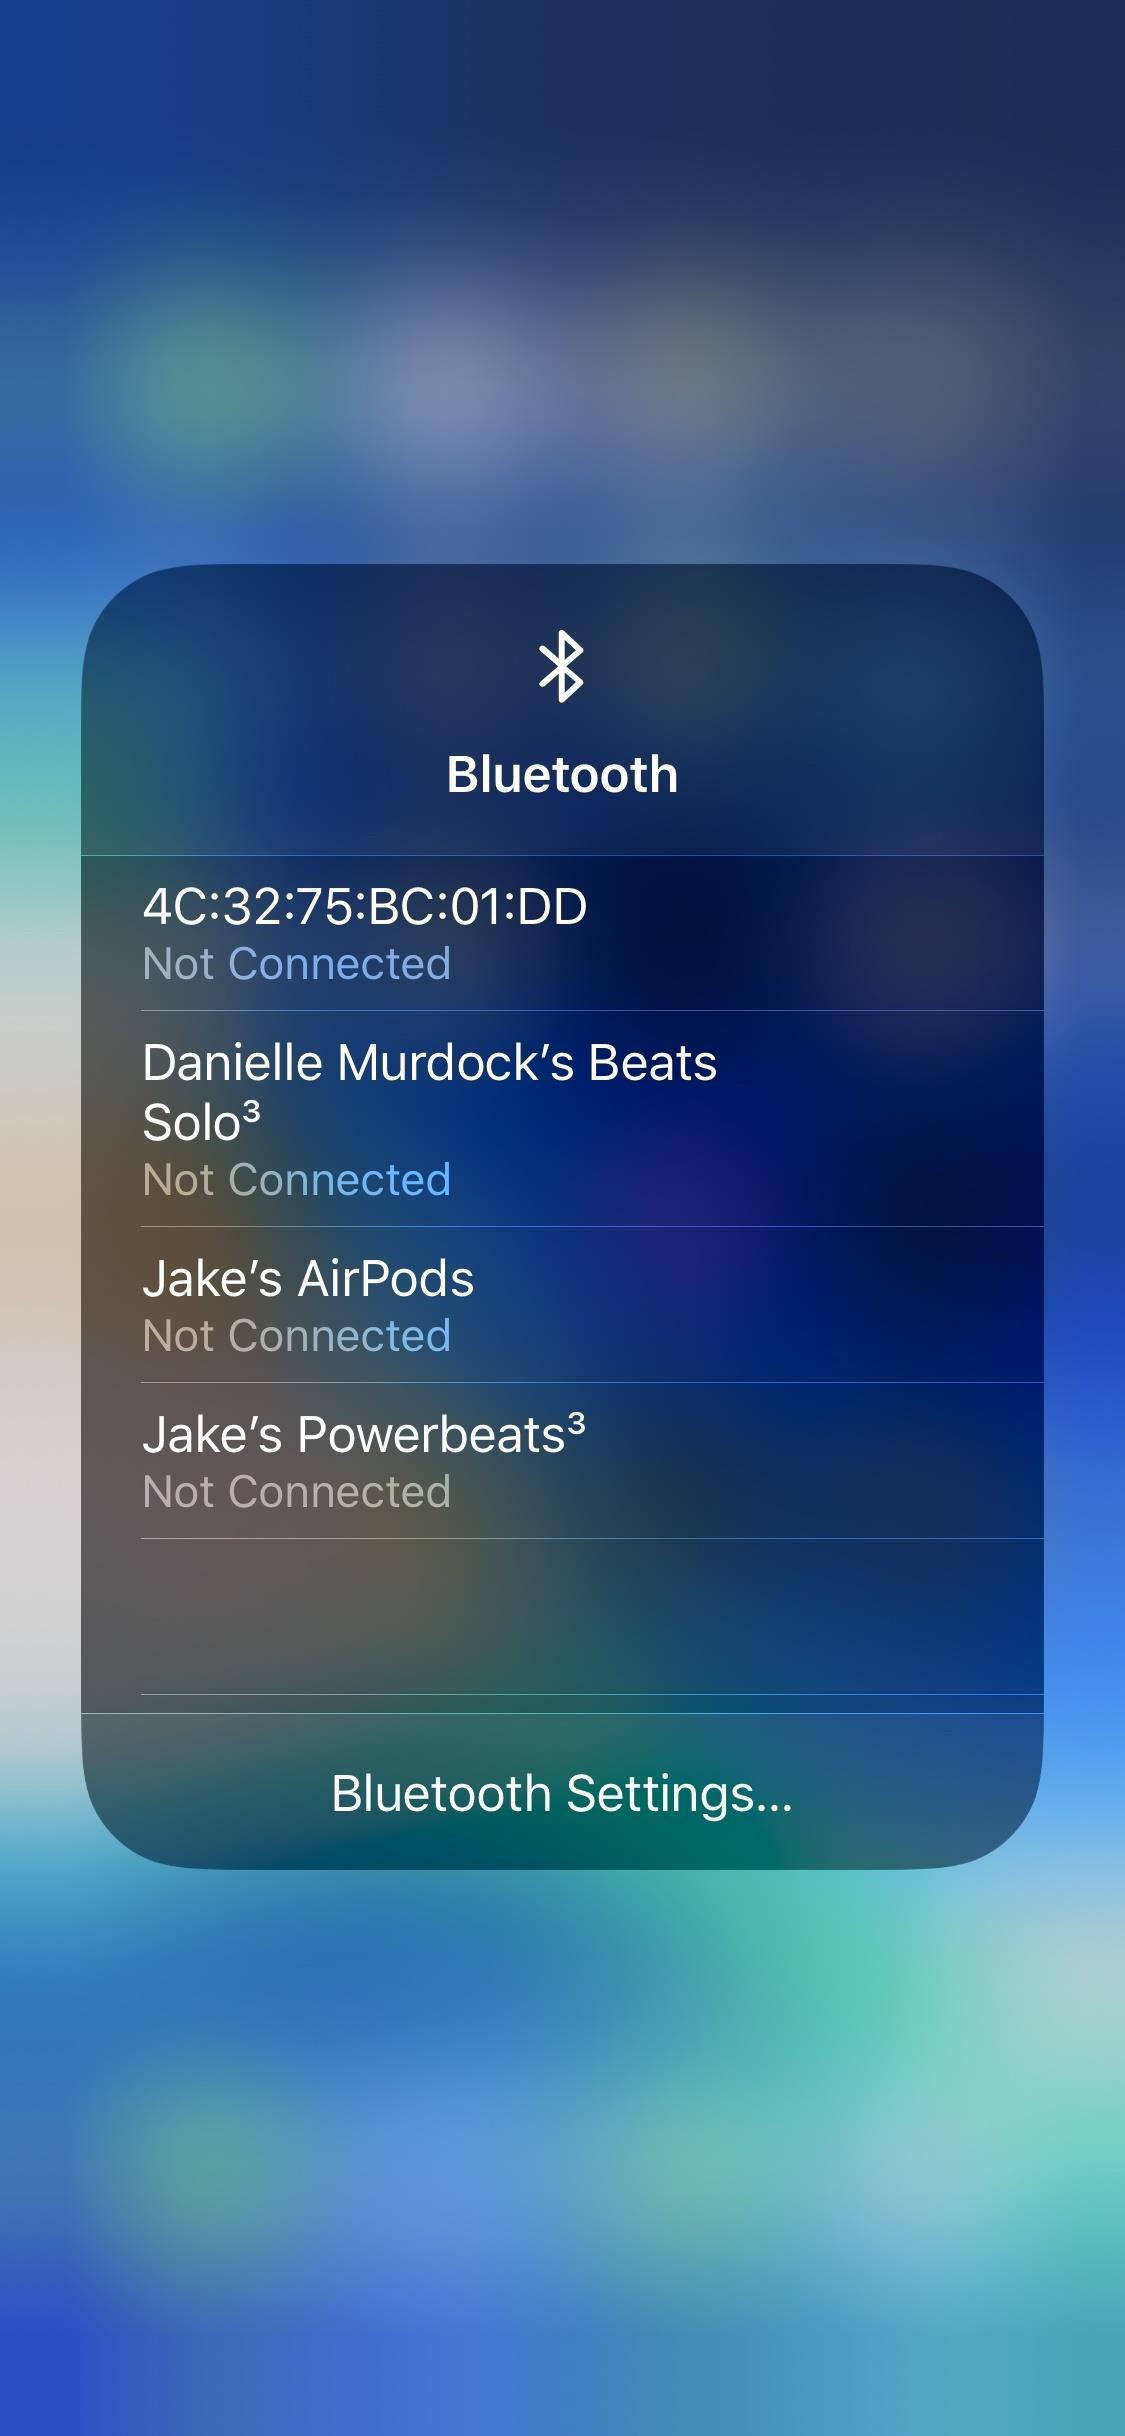 iOS 13 Has Radically Improved Connecting to AirPods & Bluetooth Devices